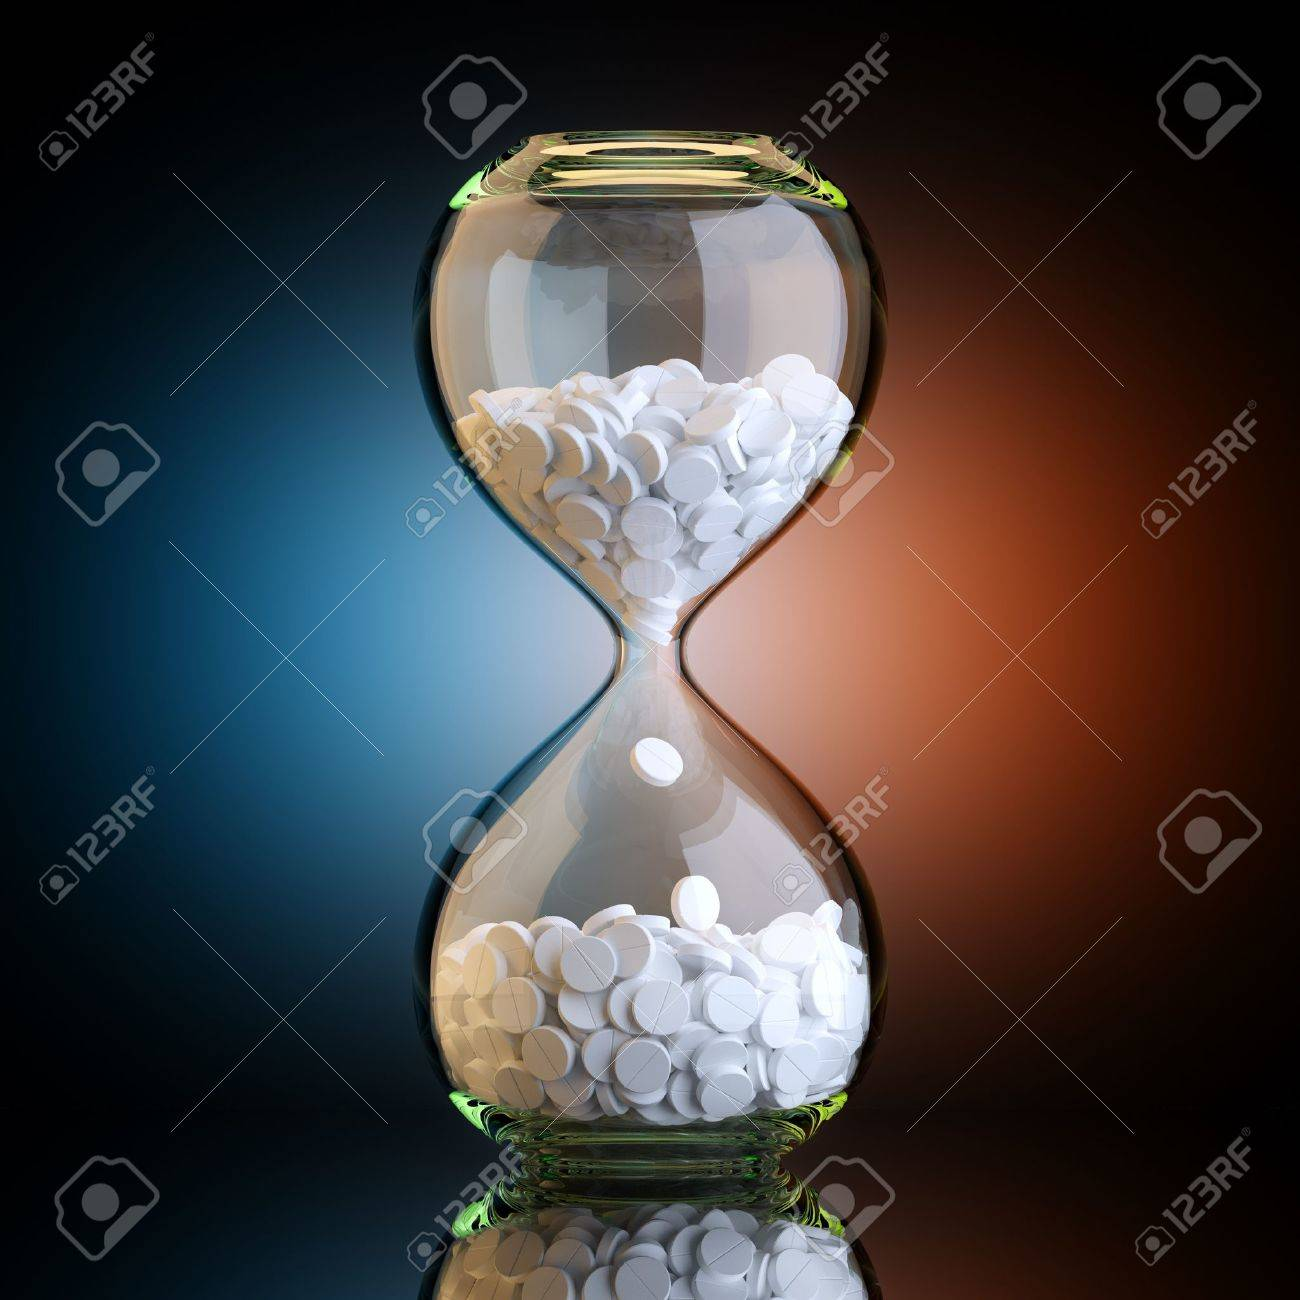 Sand Clock With Pills In Black Studio With Artistic Backlight - 18690749